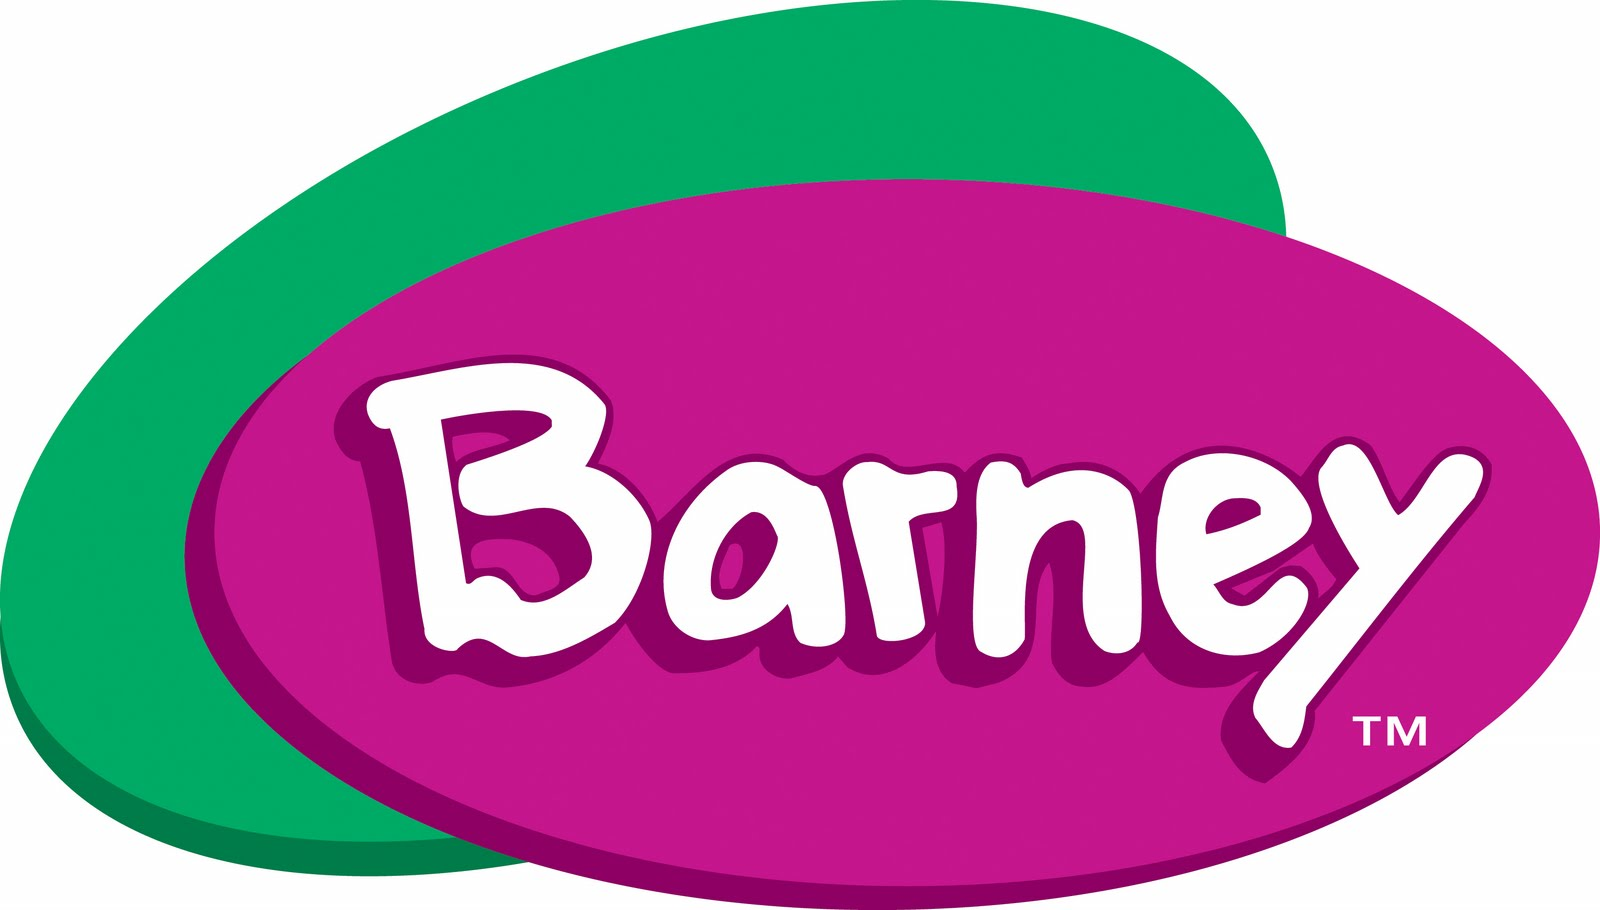 image barney logo jpg logo timeline wiki fandom powered by wikia rh logo timeline wikia com barney home video logo clg wiki barney home video logo byg